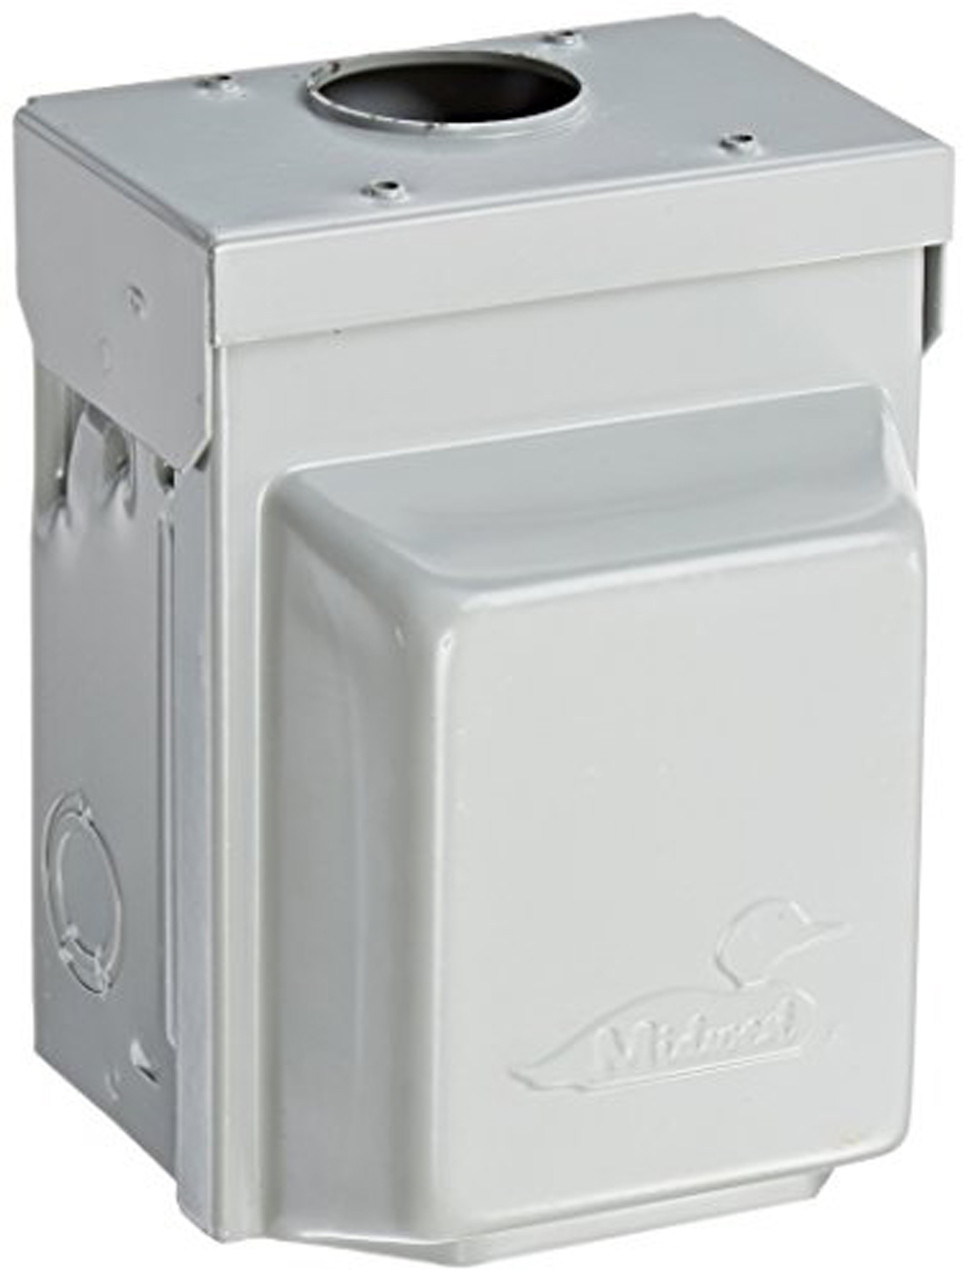 Midwest power outlet U010010 20a 120v